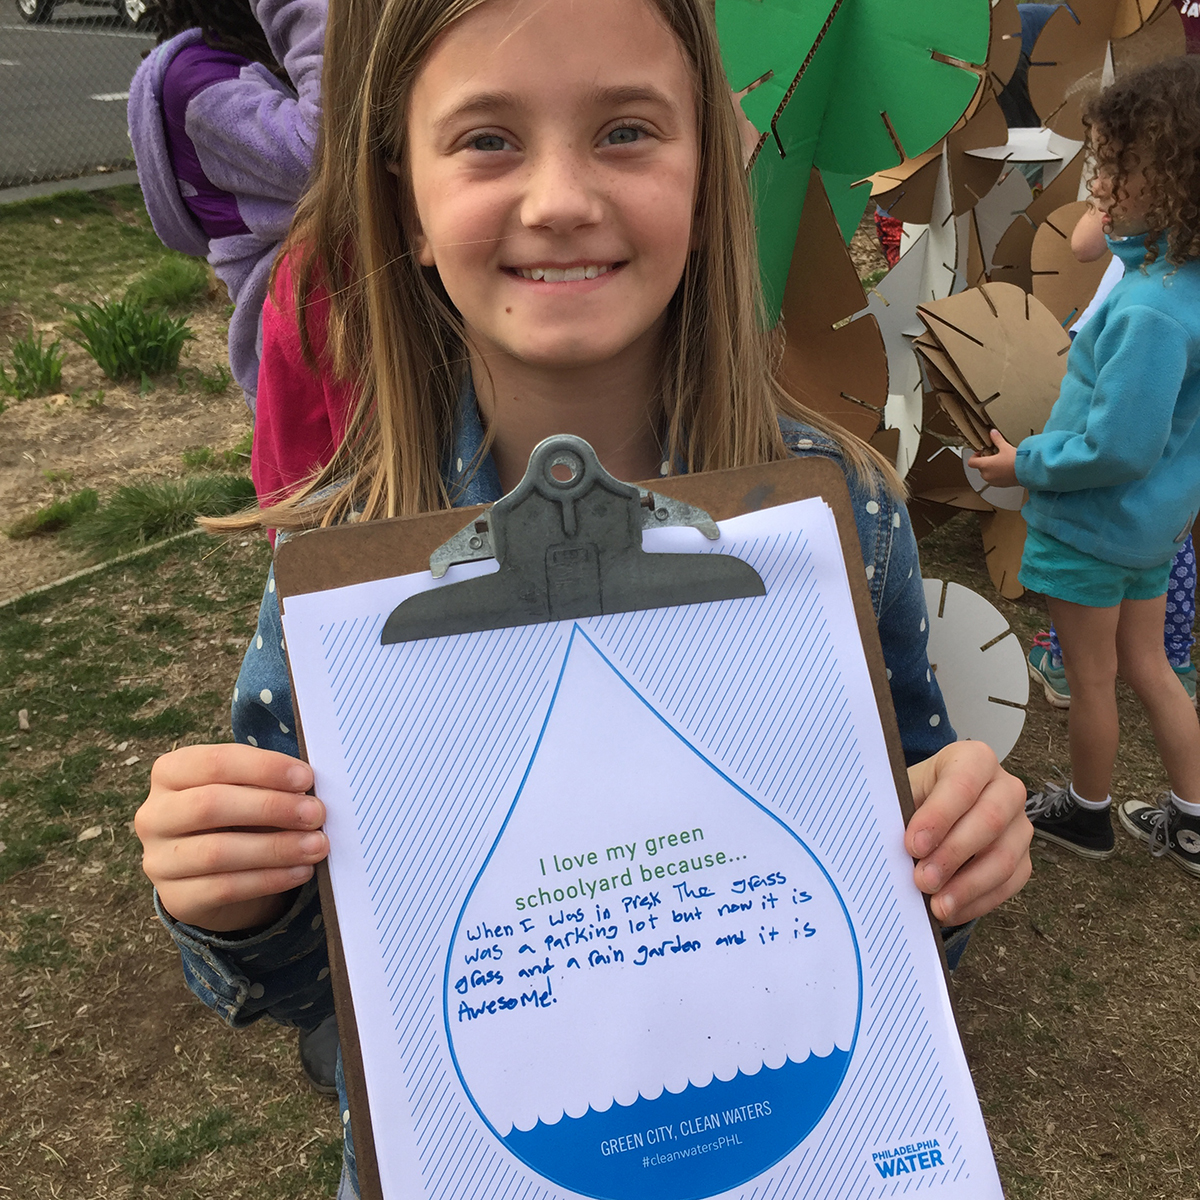 Students filled out cards that let them tell their Green City, Clean Waters story on Earth Day. You can take part and tell your story at Science Fest! Credit: Philadelphia Water